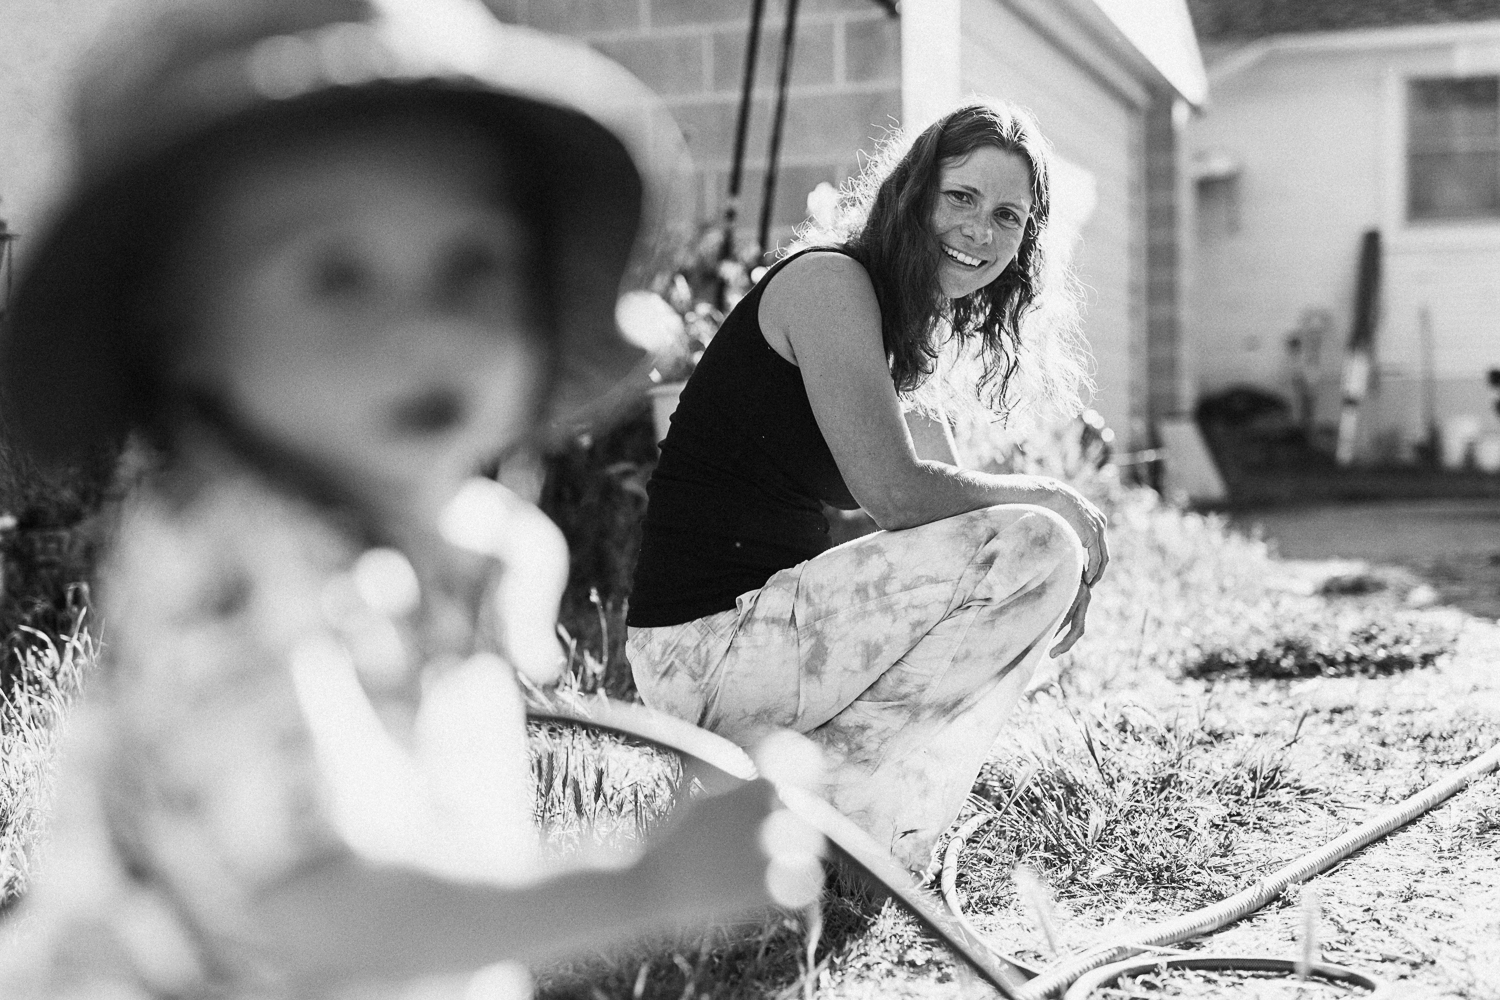 natural-and-artistic-black-and-white-happy-photo-mother-and-son-playing-outside-with-jen-fairchild-photography-holladay-utah